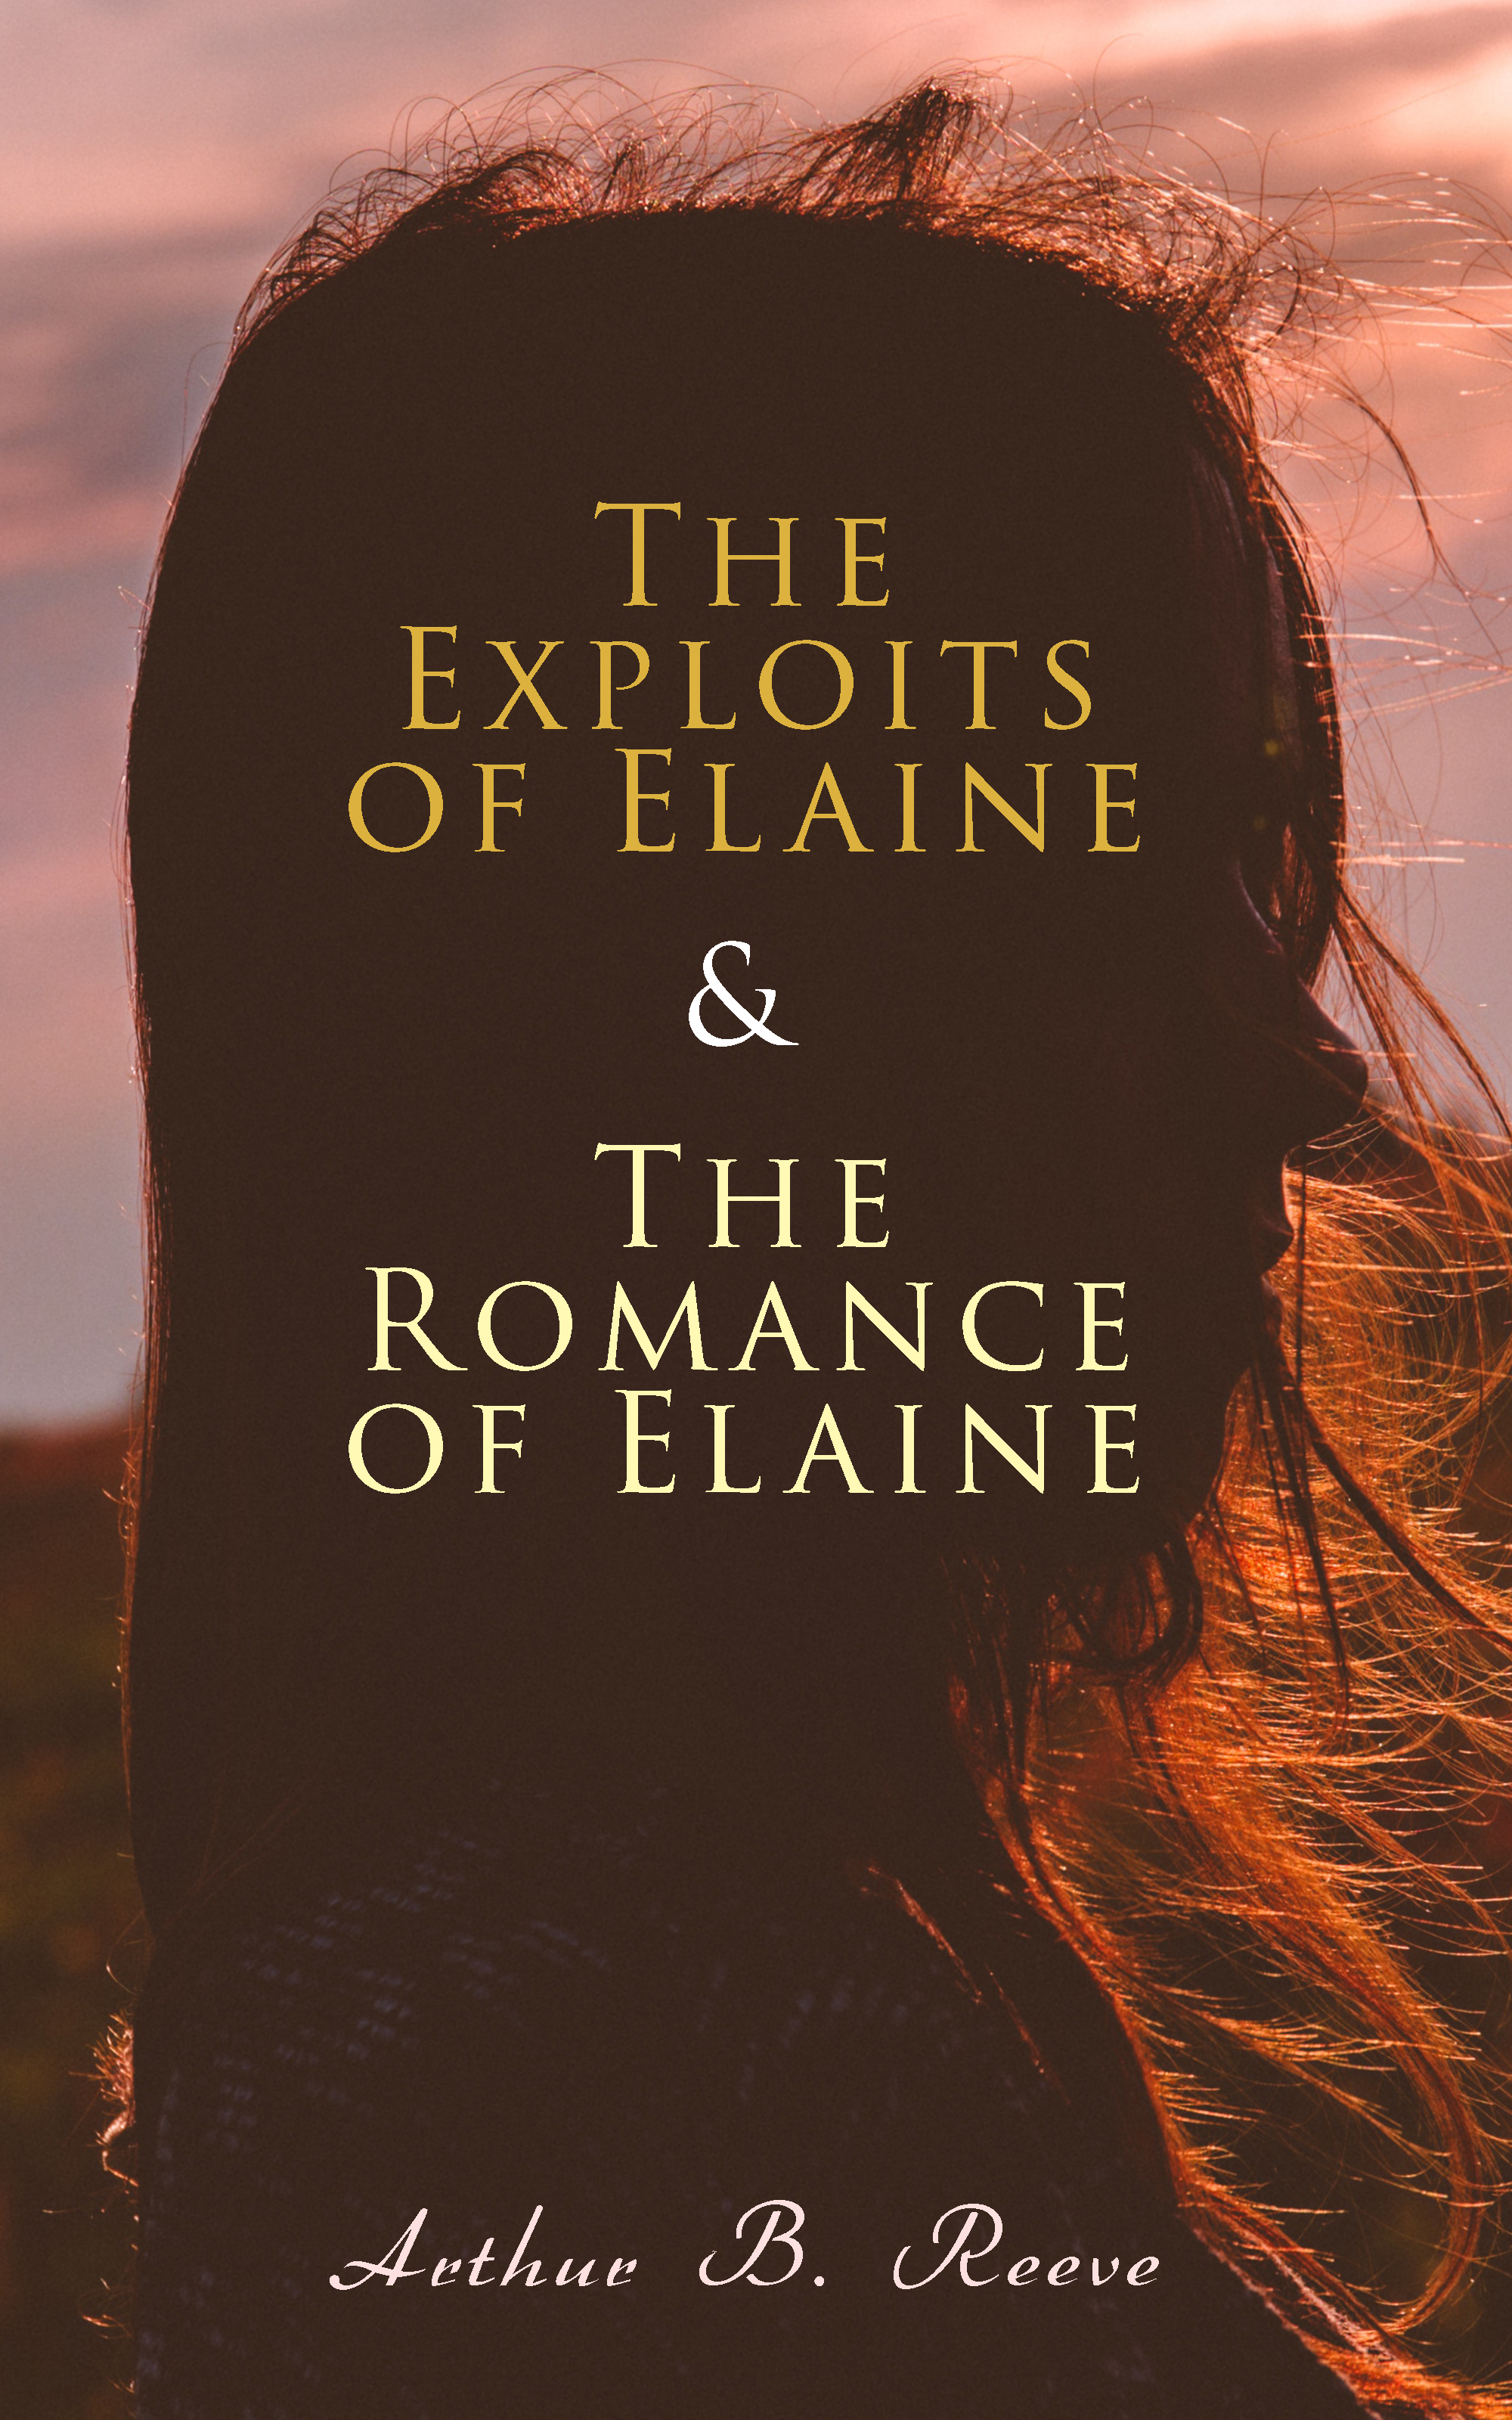 Arthur B. Reeve The Exploits of Elaine & The Romance of Elaine elaine mazlish siblings without rivalry